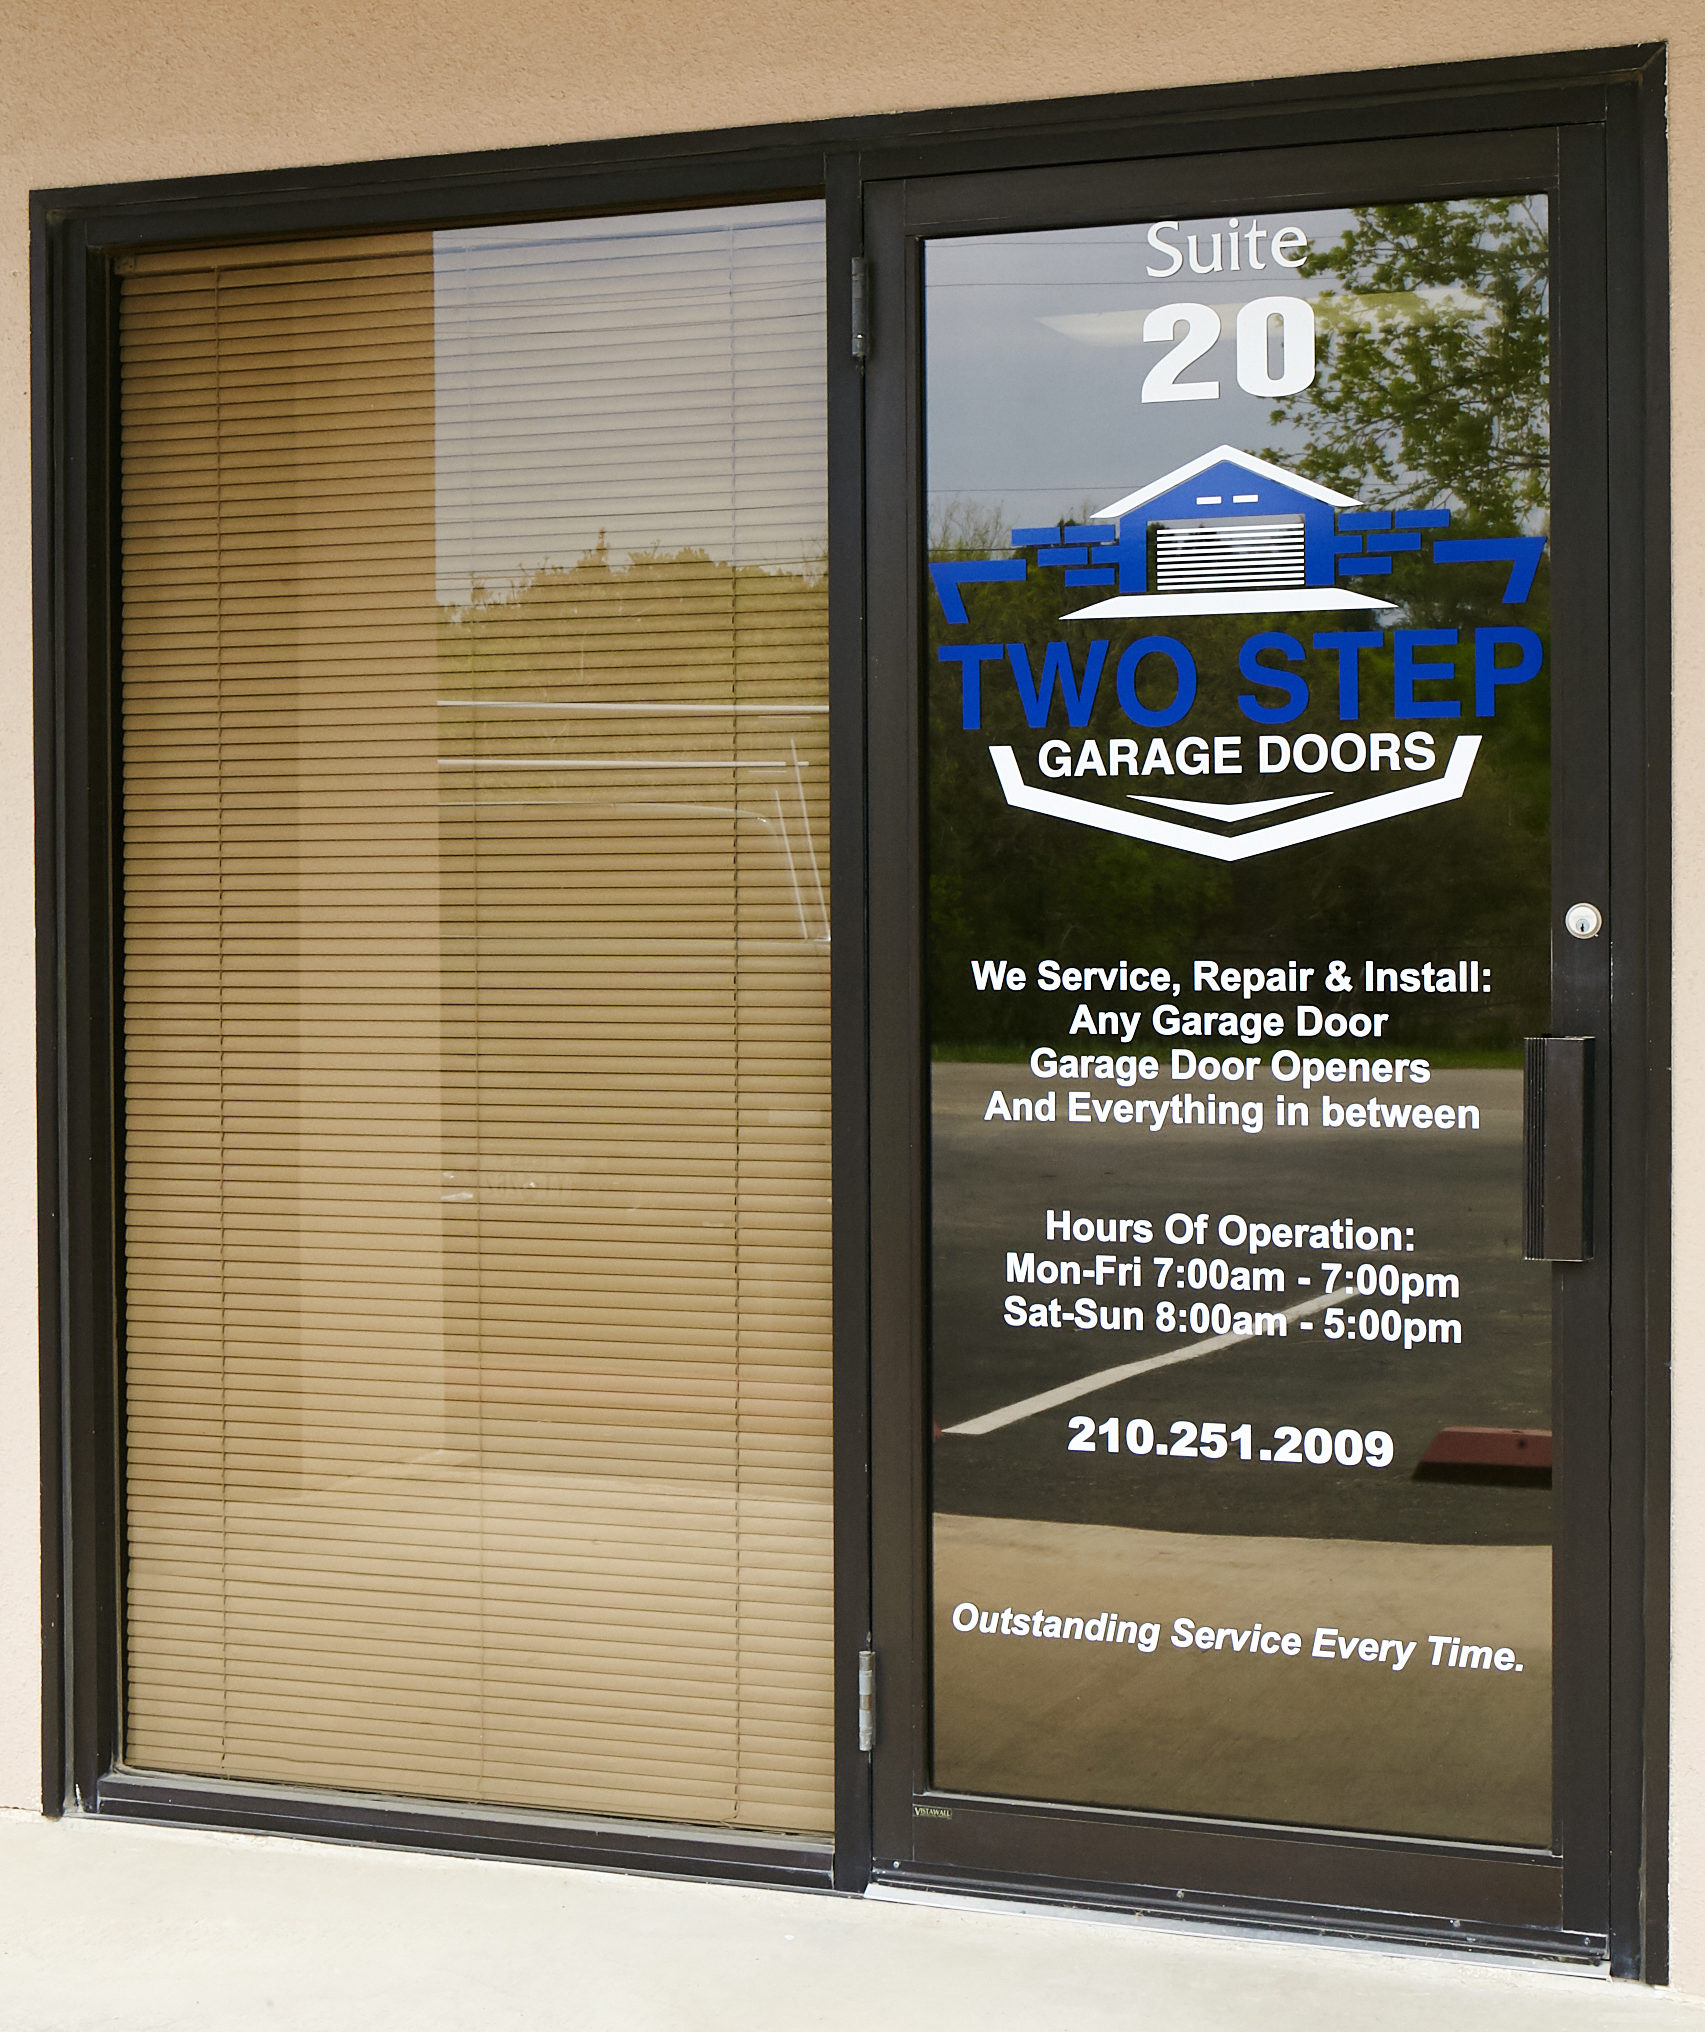 Two Step Garage Doors company pic